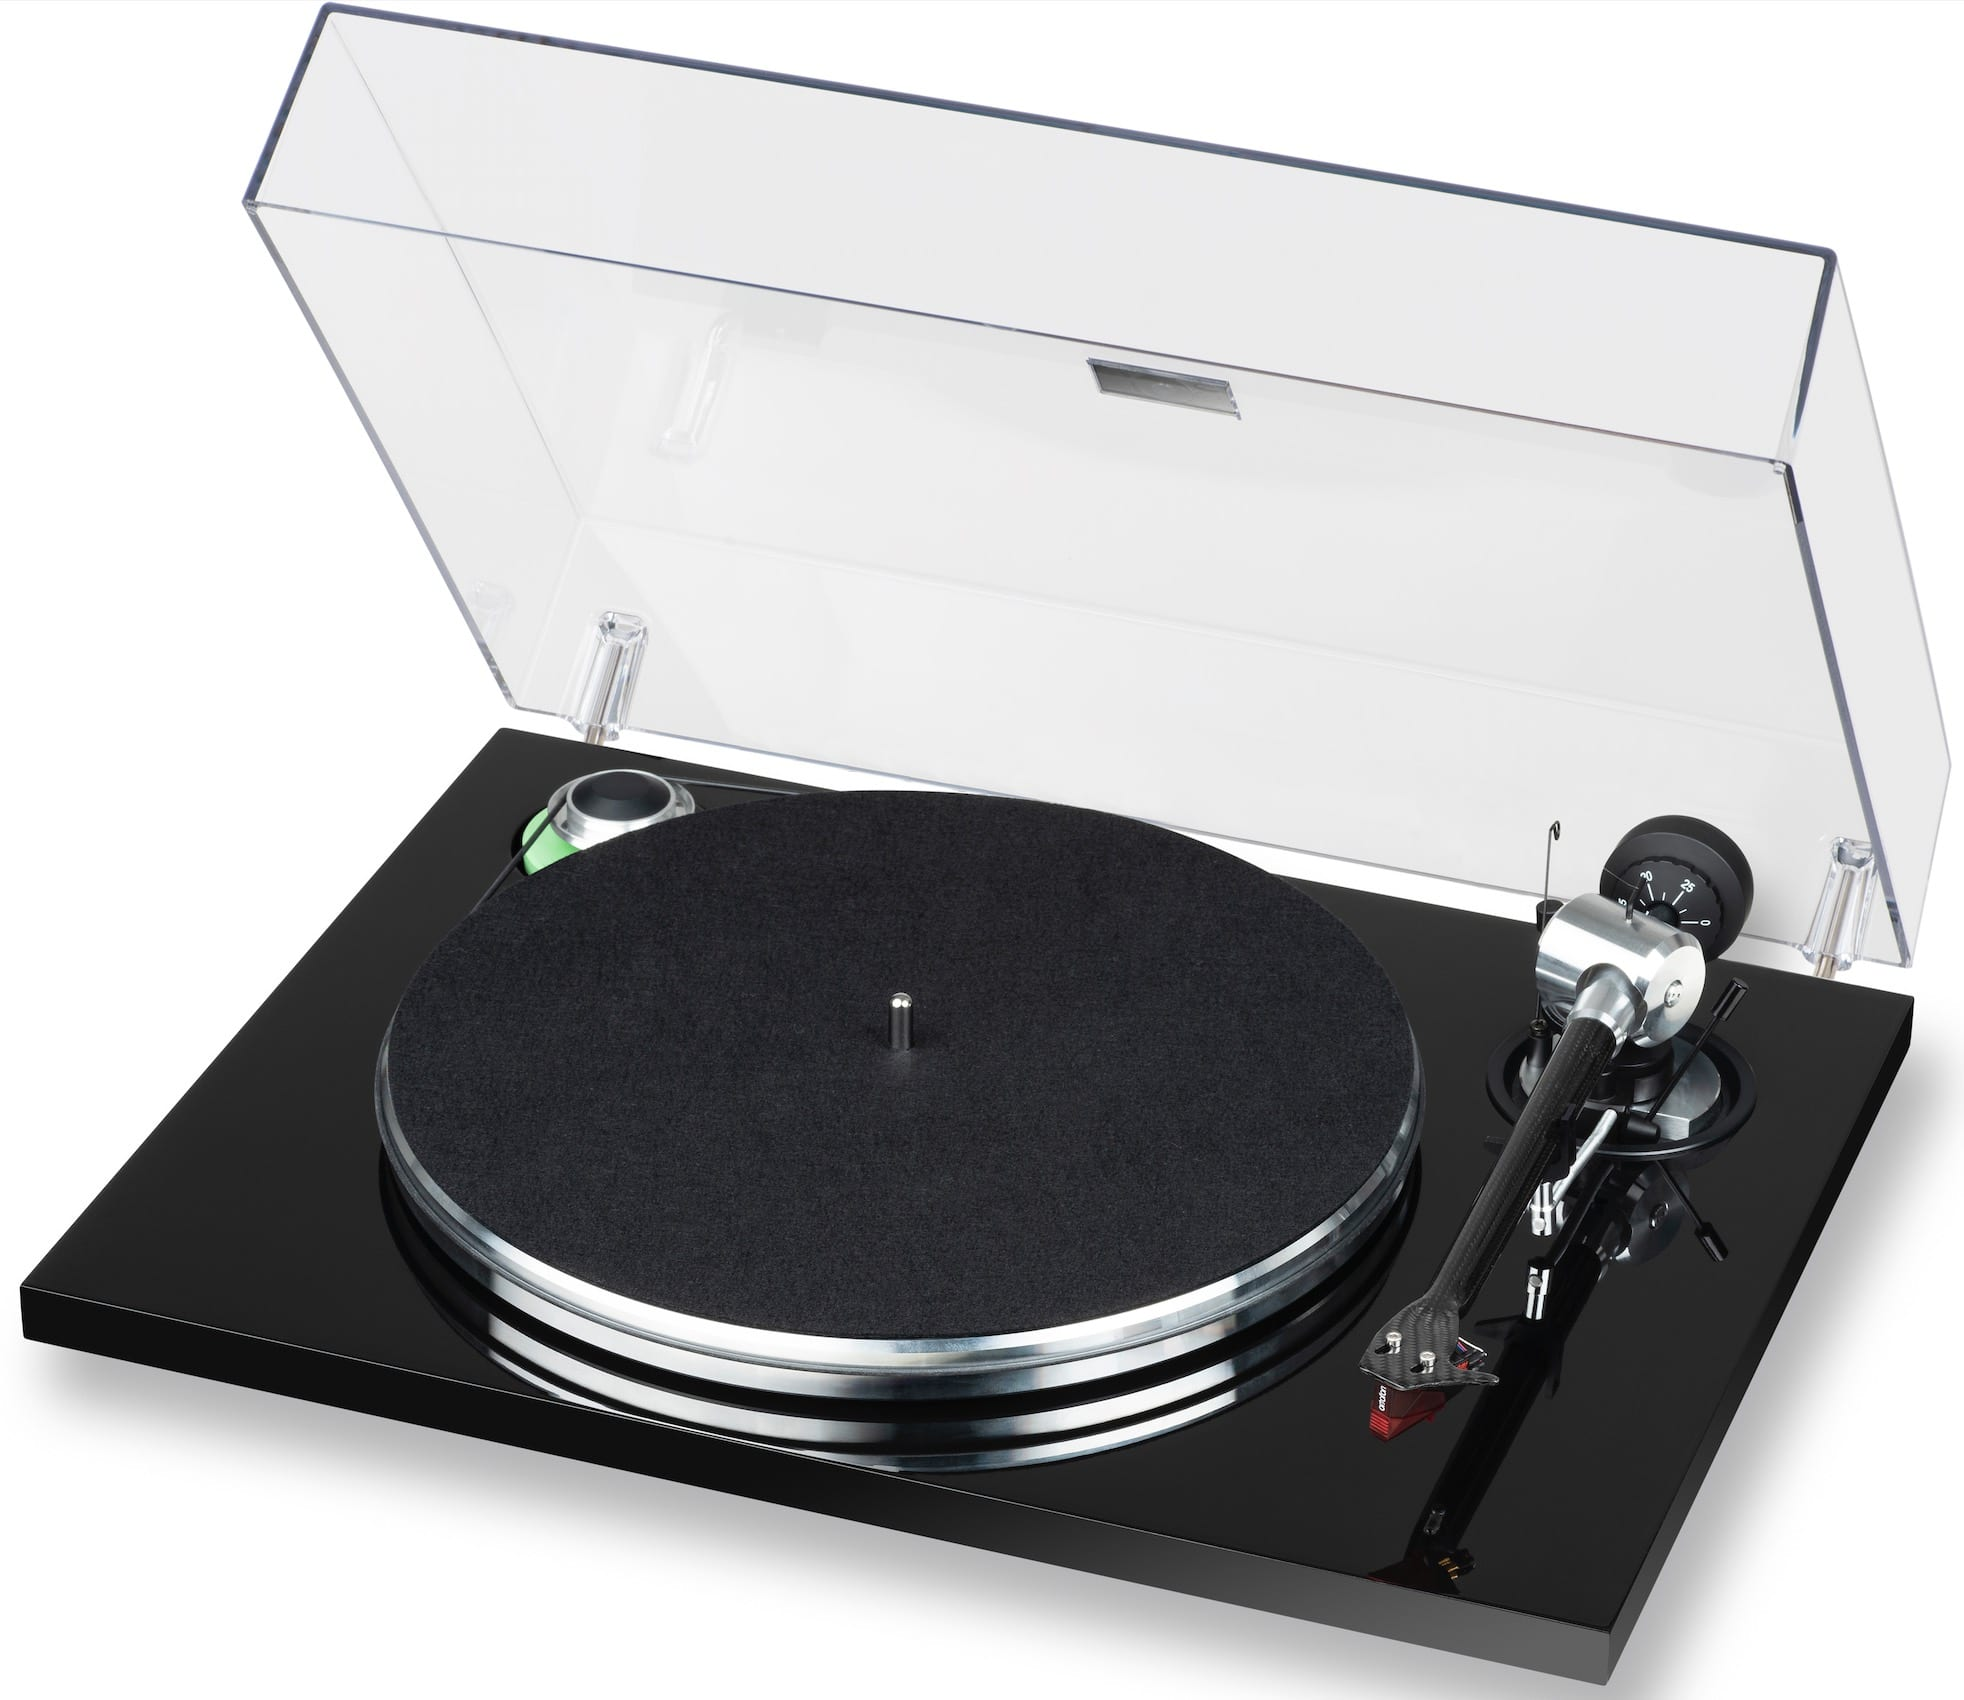 Prelude Turntable From EAT